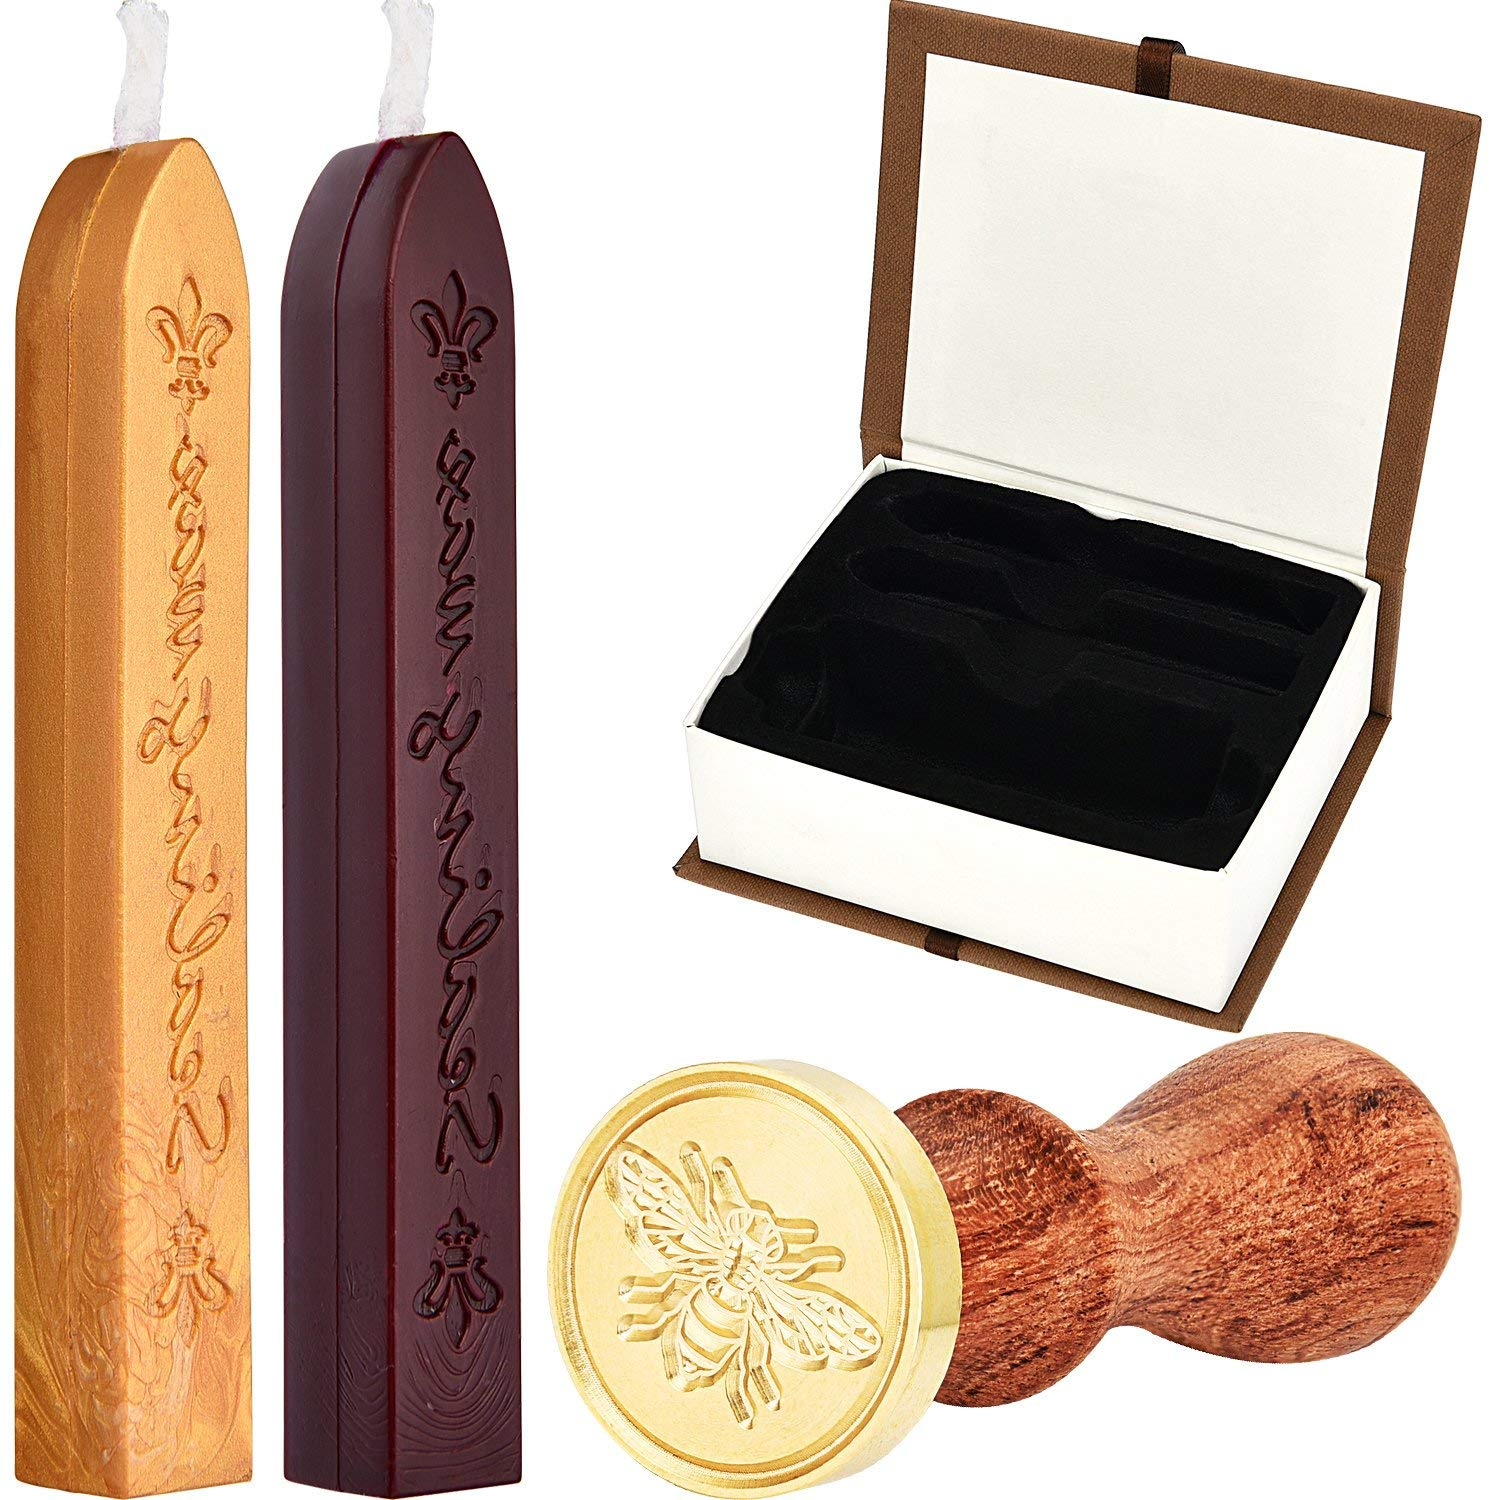 Hestya Bee Wax Seal Stamp Kit, Removable Wooden Handle Vintage Retro Brass Head Sealing Stamp and 2 Pieces Sealing Wax Sticks with Wick (Rosy Red and Gold) Gift Box Set